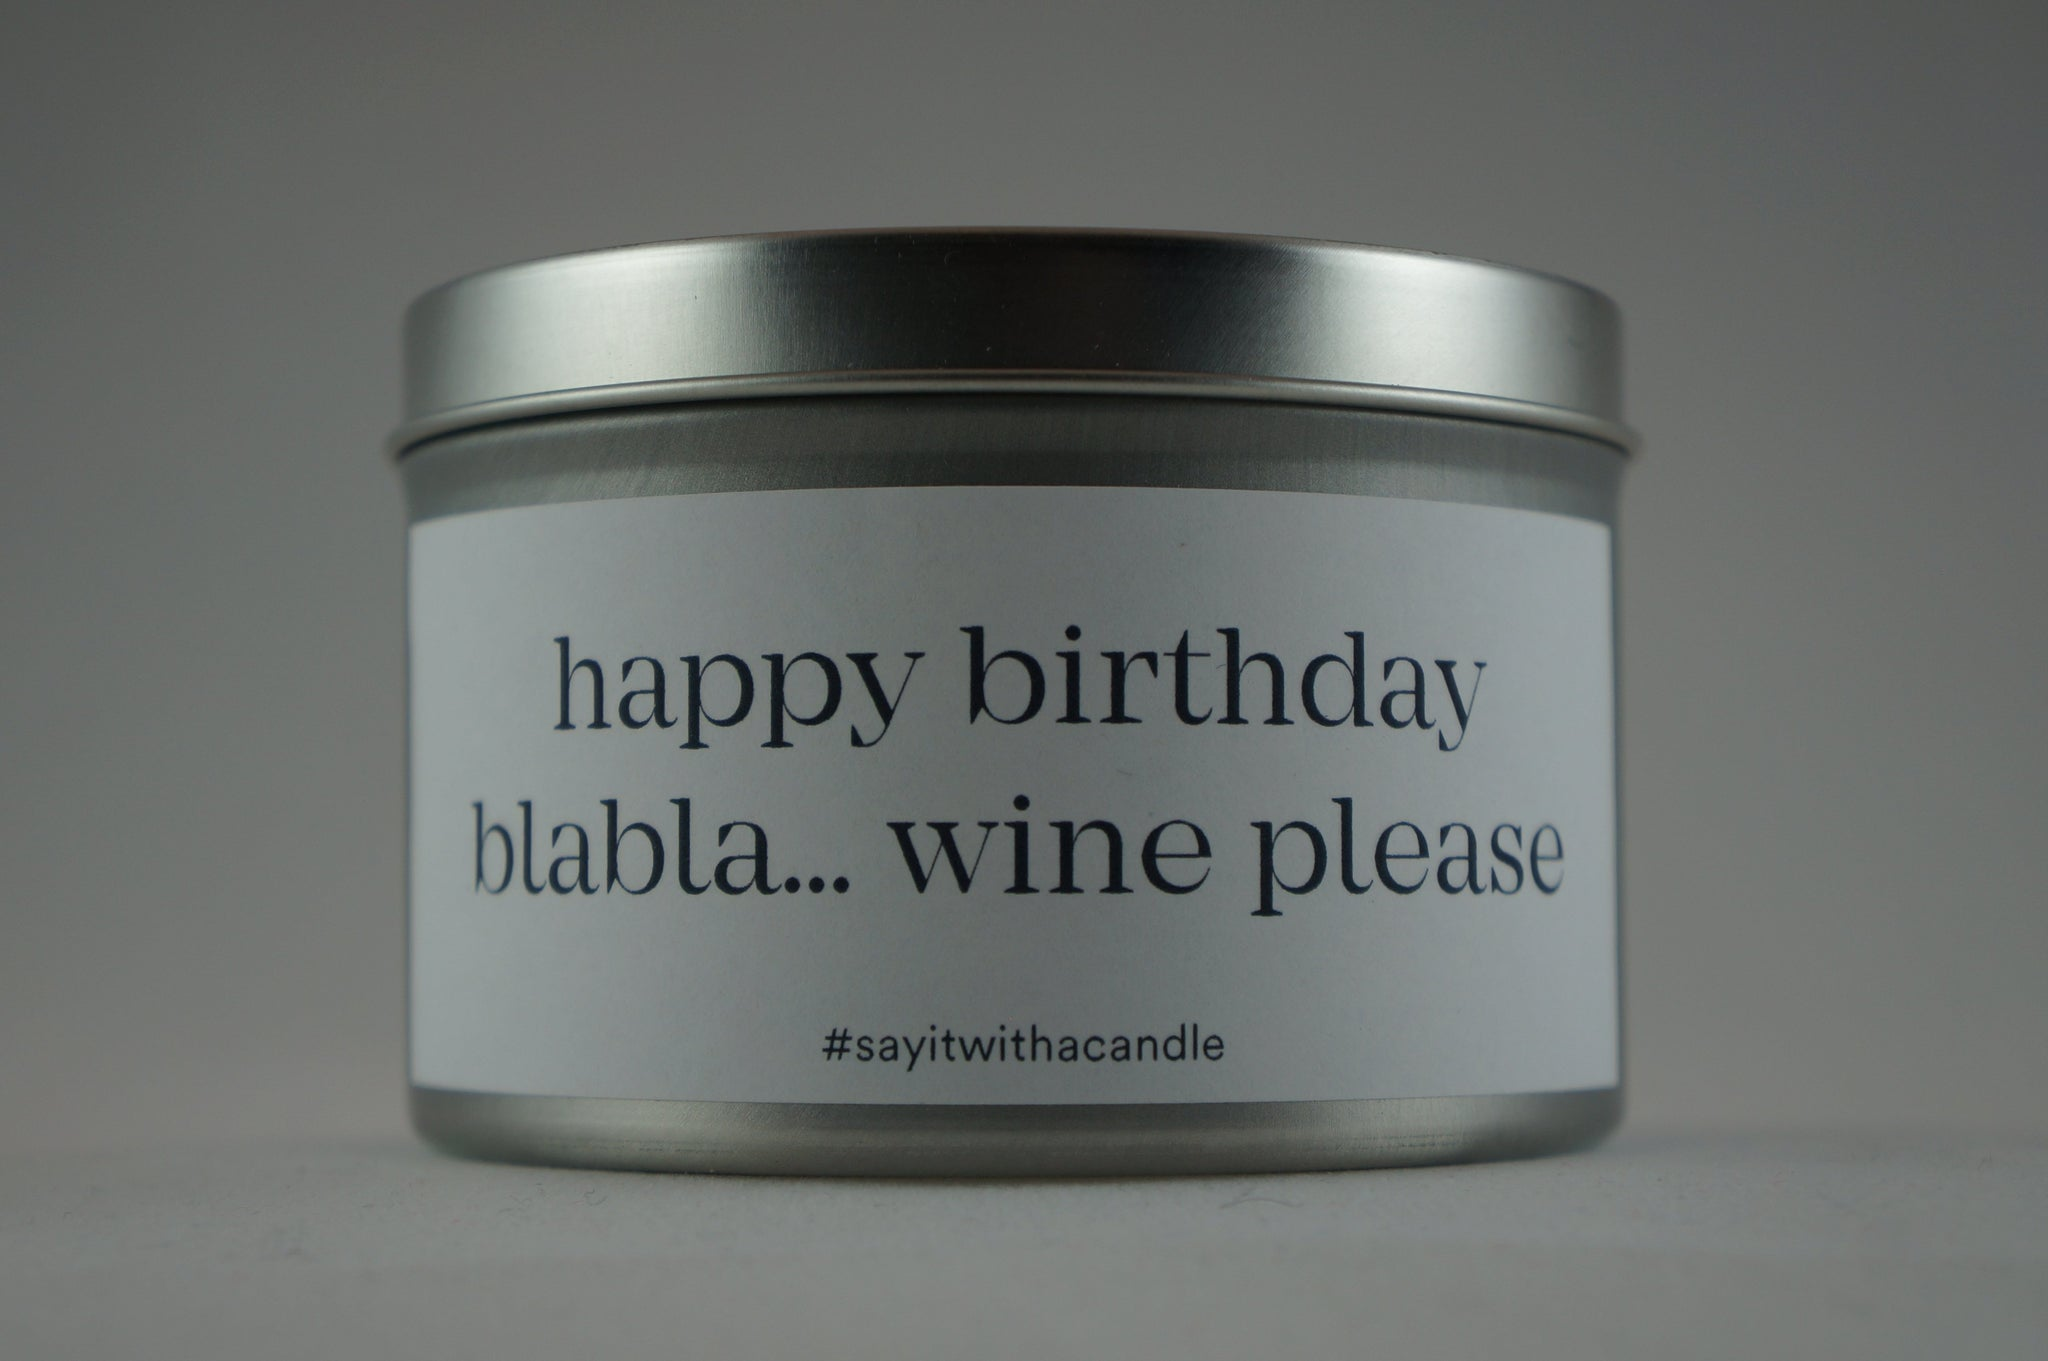 happy birthday blabla... wine please